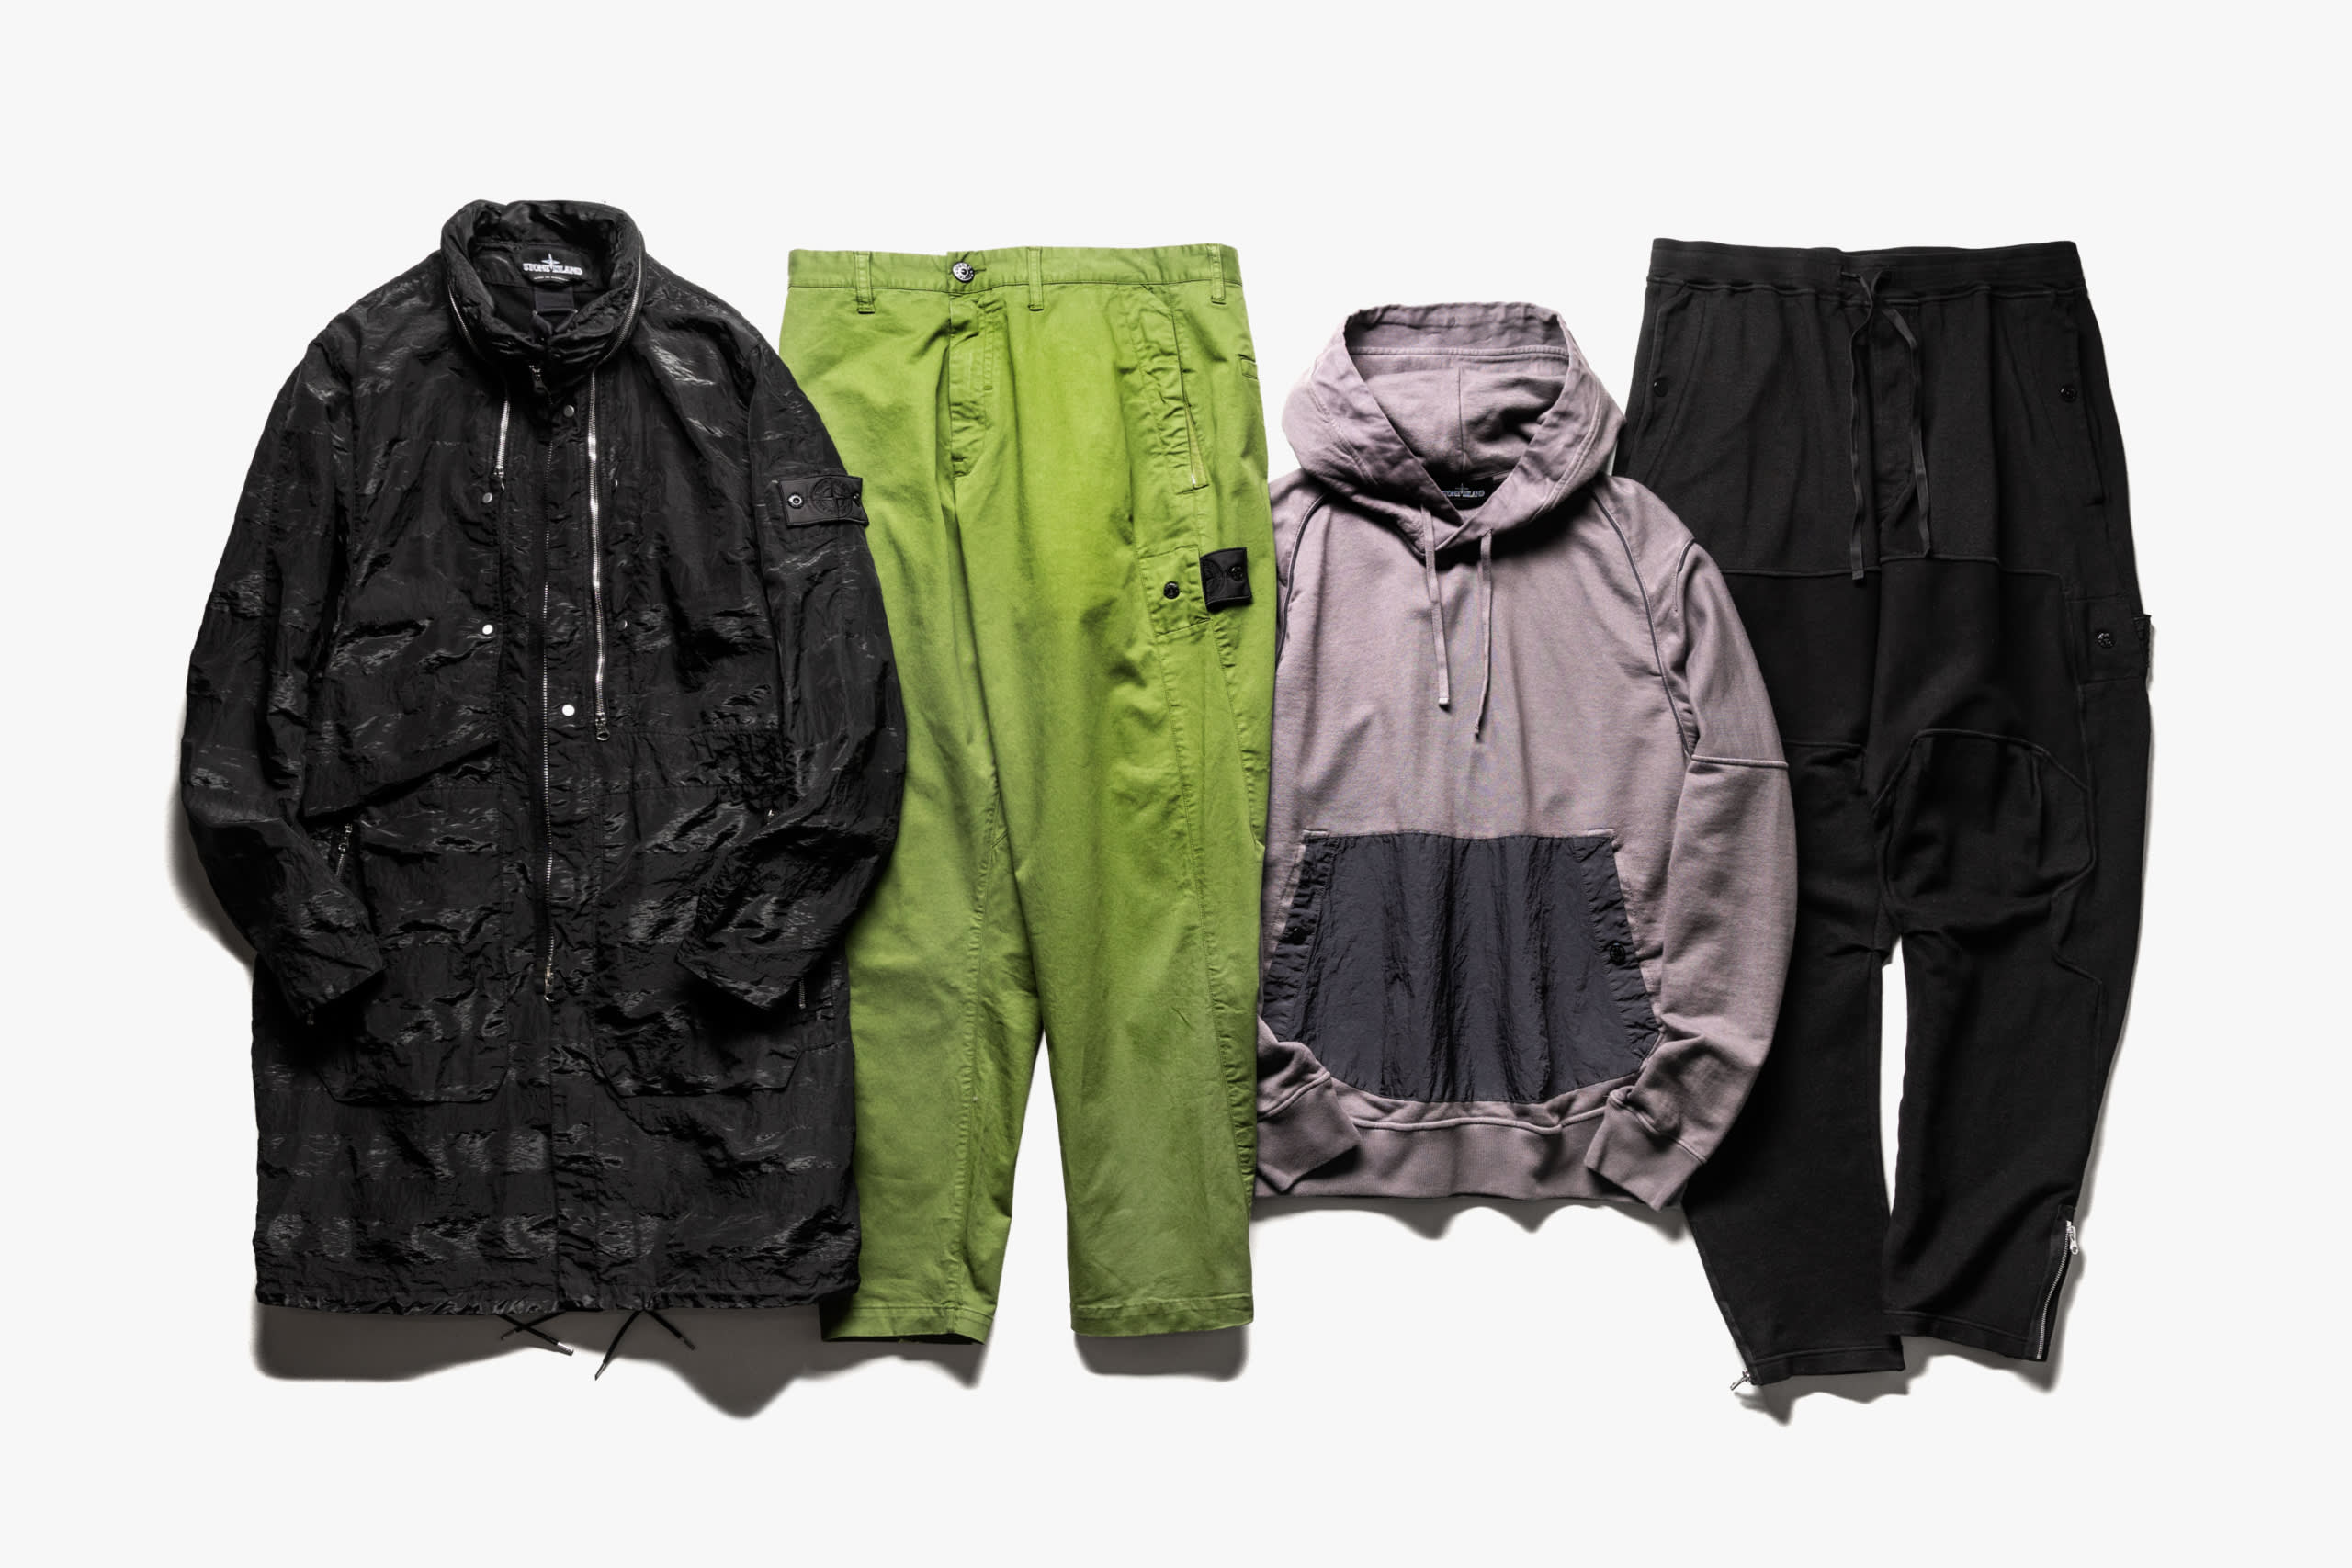 STONE ISLAND SHADOW PROJECT SS20 NEW ARRIVALS HAVEN